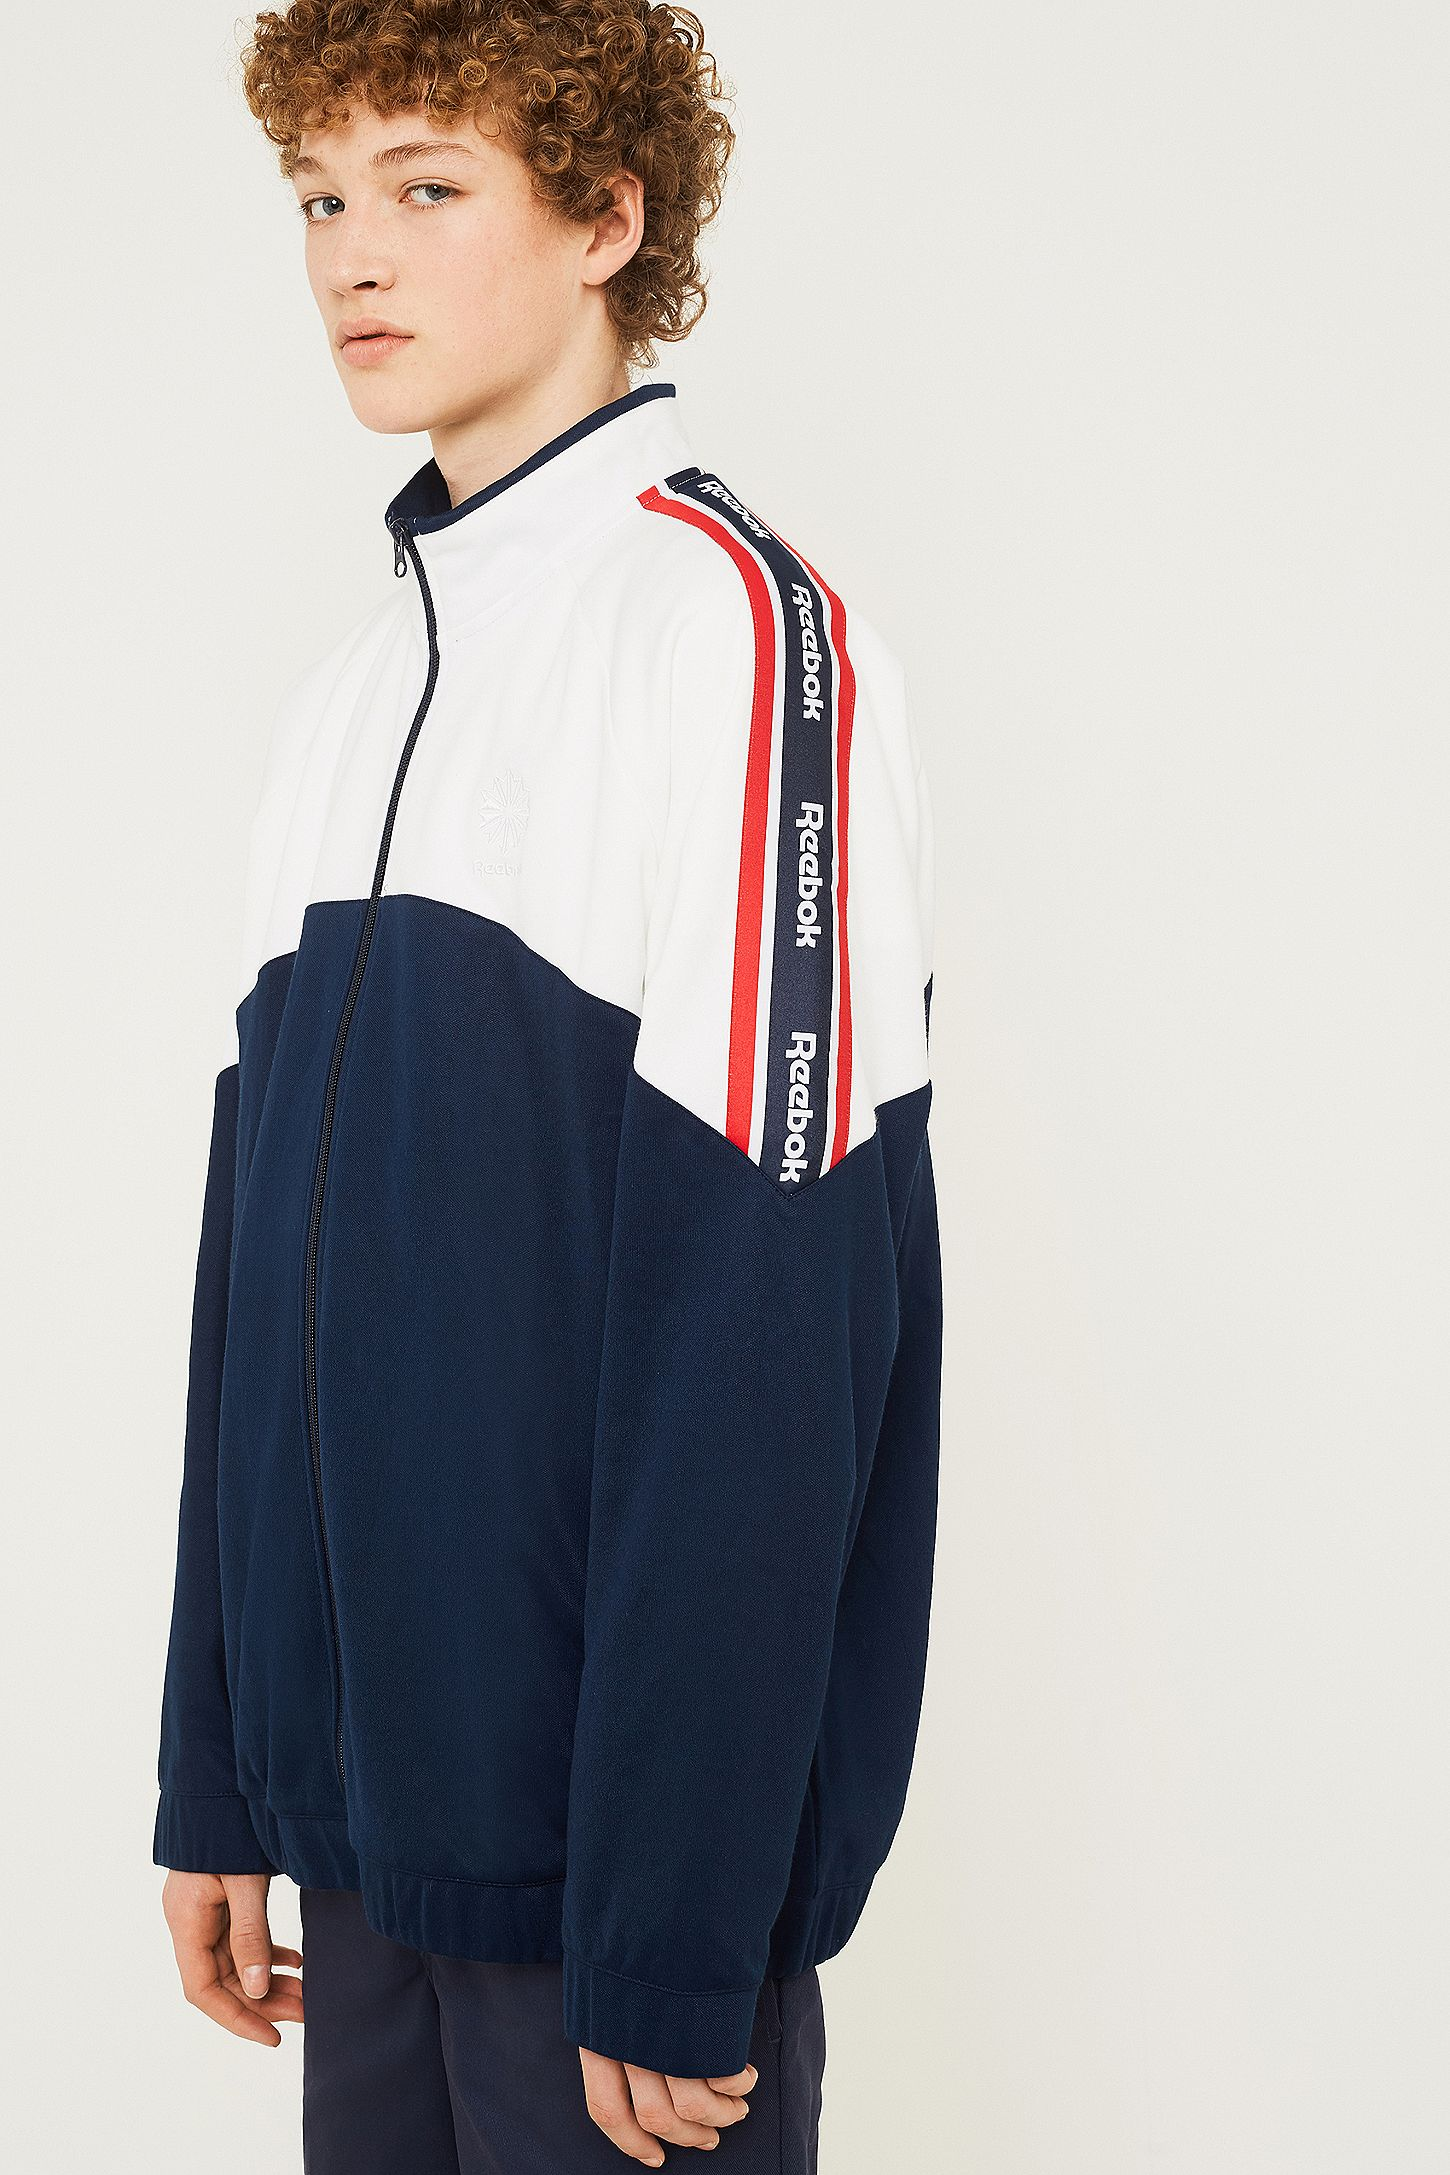 dfefc76b789 Reebok Franchise Navy Track Top. Click on image to zoom. Hover to zoom.  Double Tap to Zoom